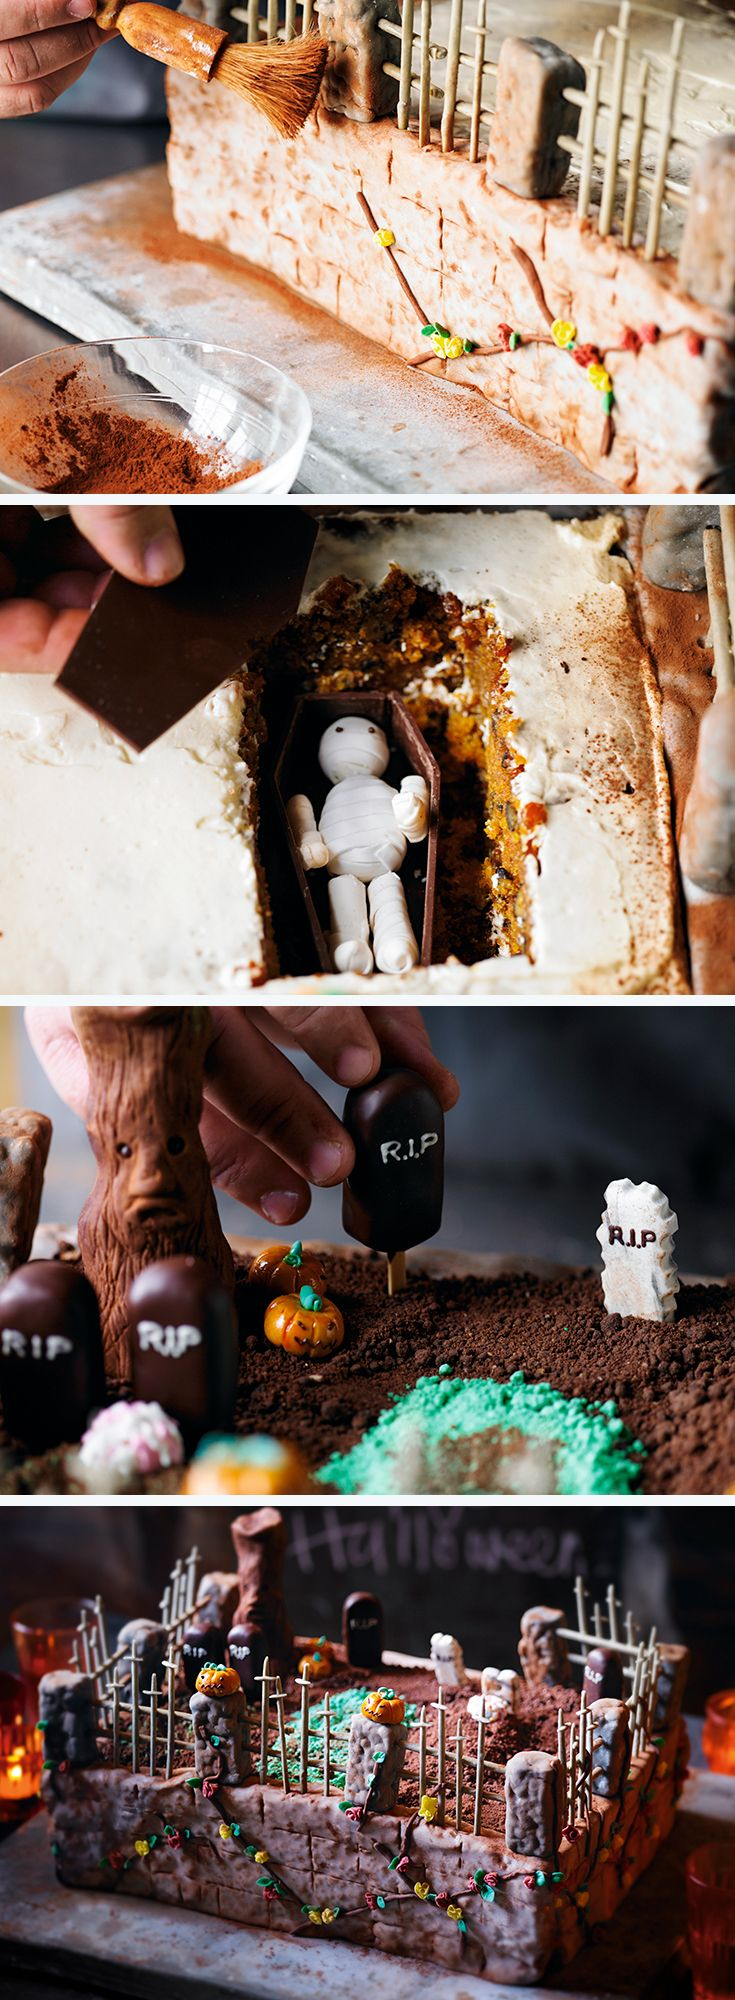 Possibly the best Halloween cake ever... Heston's Ultimate Halloween Cake recipe, complete with a zombie grave!